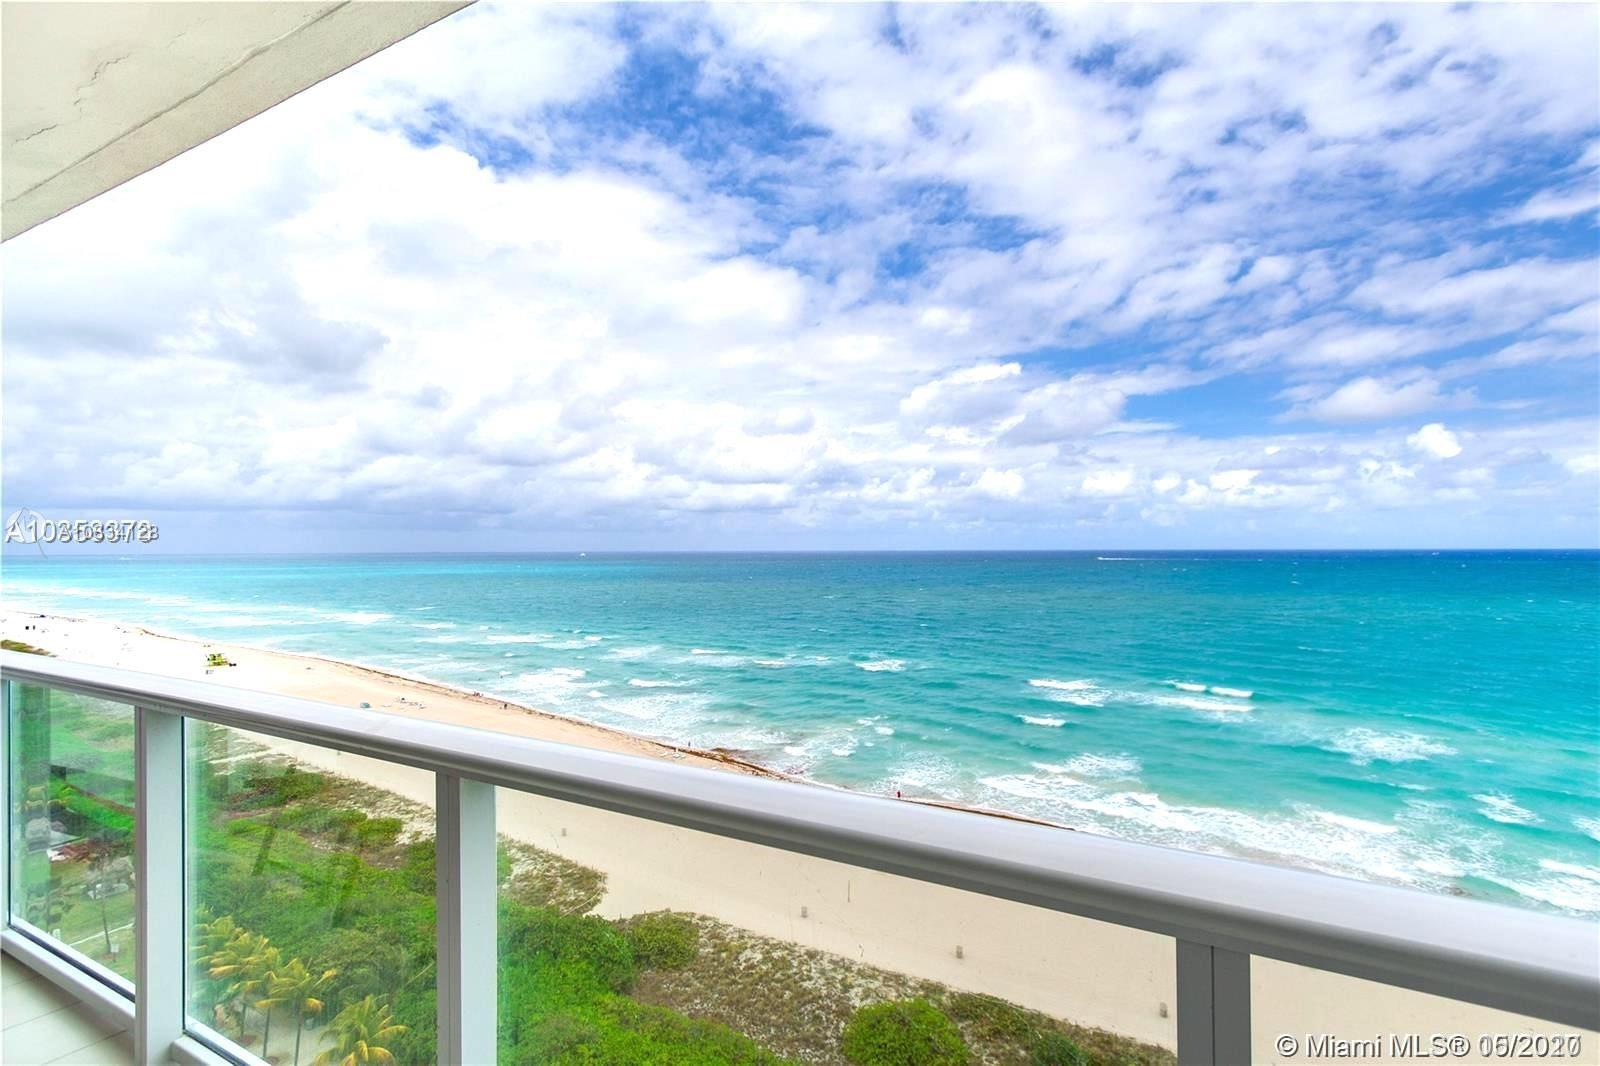 Enjoy the best beach Miami Beach w/direct ocean views from every room in this stunning completely remodeled high floor 2 bed/2 bad w/den. Master bedroom w/ king size bed, custom built-in closet, Flat TV screen & full bathroom. 2nd bedroom with 2 beds, custom built-in closet and flat TV. Bonus room, Murphy bed. 2nd full bath whirpool bathtub. Unit can sleep up to 8. Modern new kitchen wood/white with huge counter top & backplash in Quartz.Unit features stainless steel appliances, porcelain tile & rollers black-outs. Private Gym 24 hours. 3 assigned garages. Special Assessment $287.37 until Oct 2028  & $241.92 until Dic 2025 by buyer. NEW IMPACT WINDOWS being installed now. Excellent for Short Term Rental 1 month or more. You can rent 12 times a year